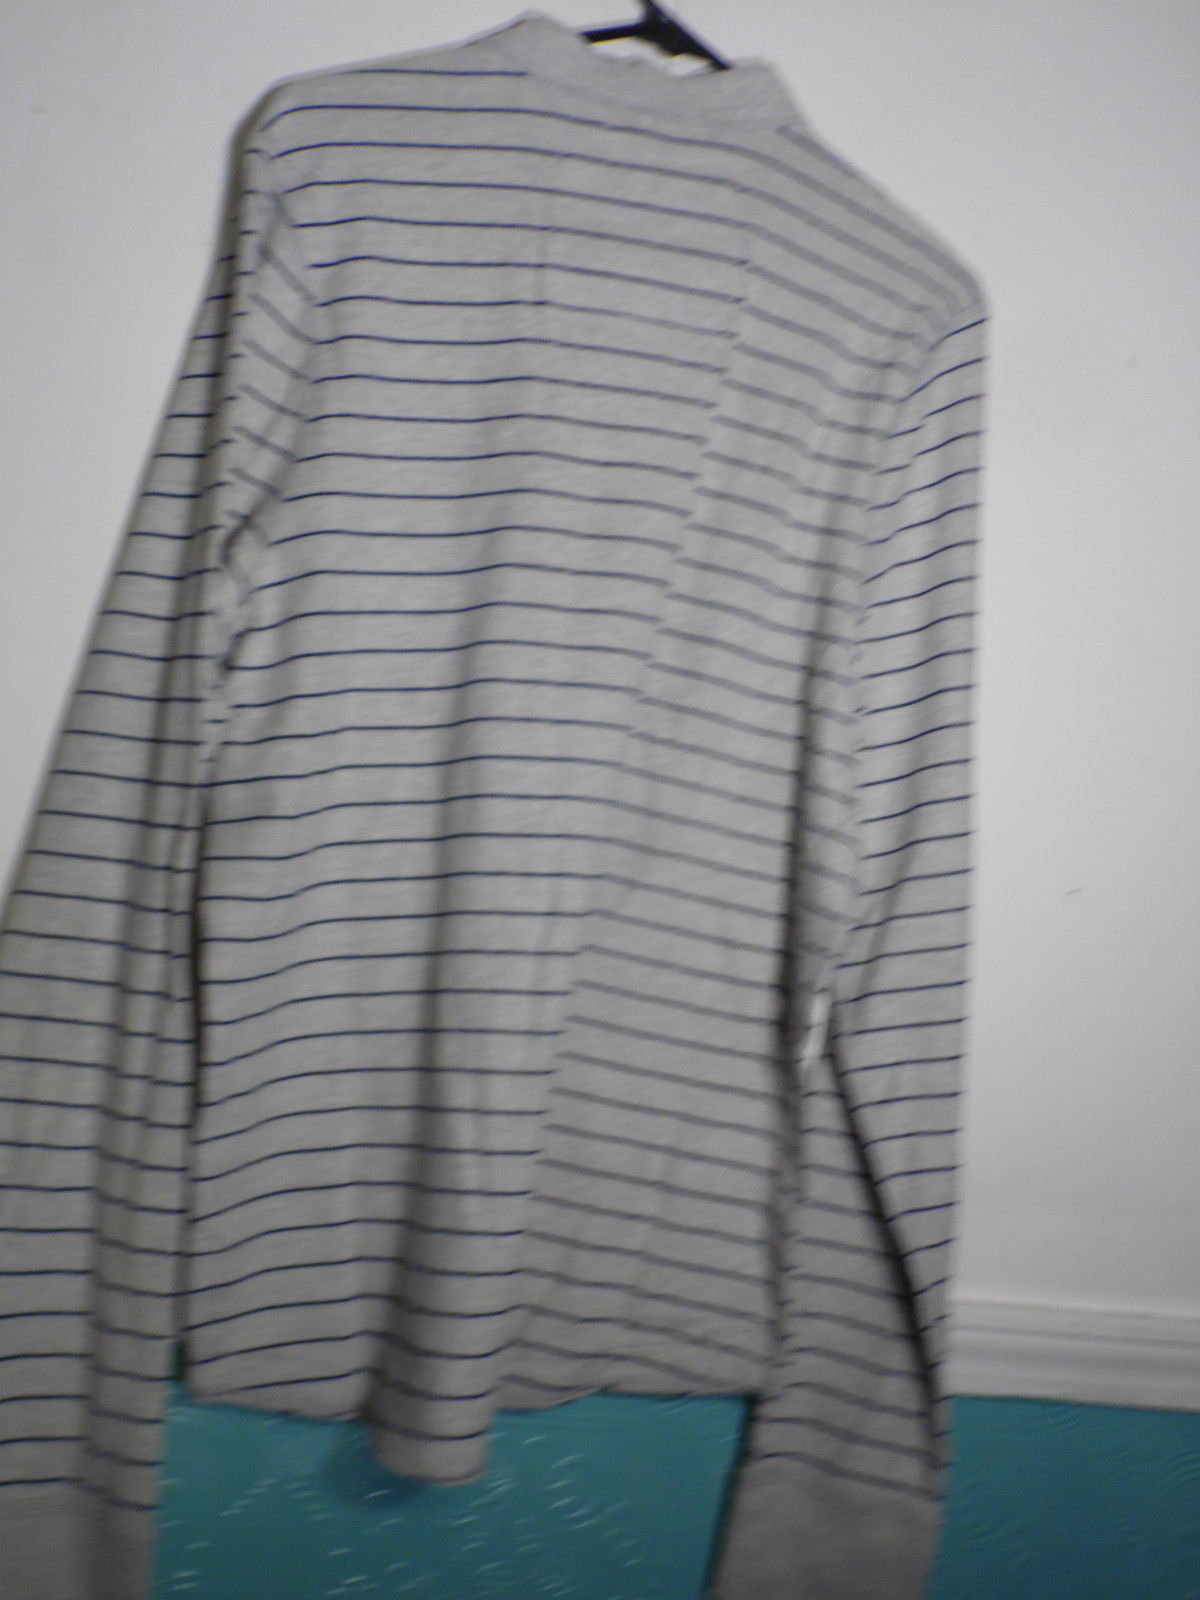 Abercrombie & Fitch Muscle Shirt XXL Gray Blue Narrow Stripe T Shirt Long Sleeve